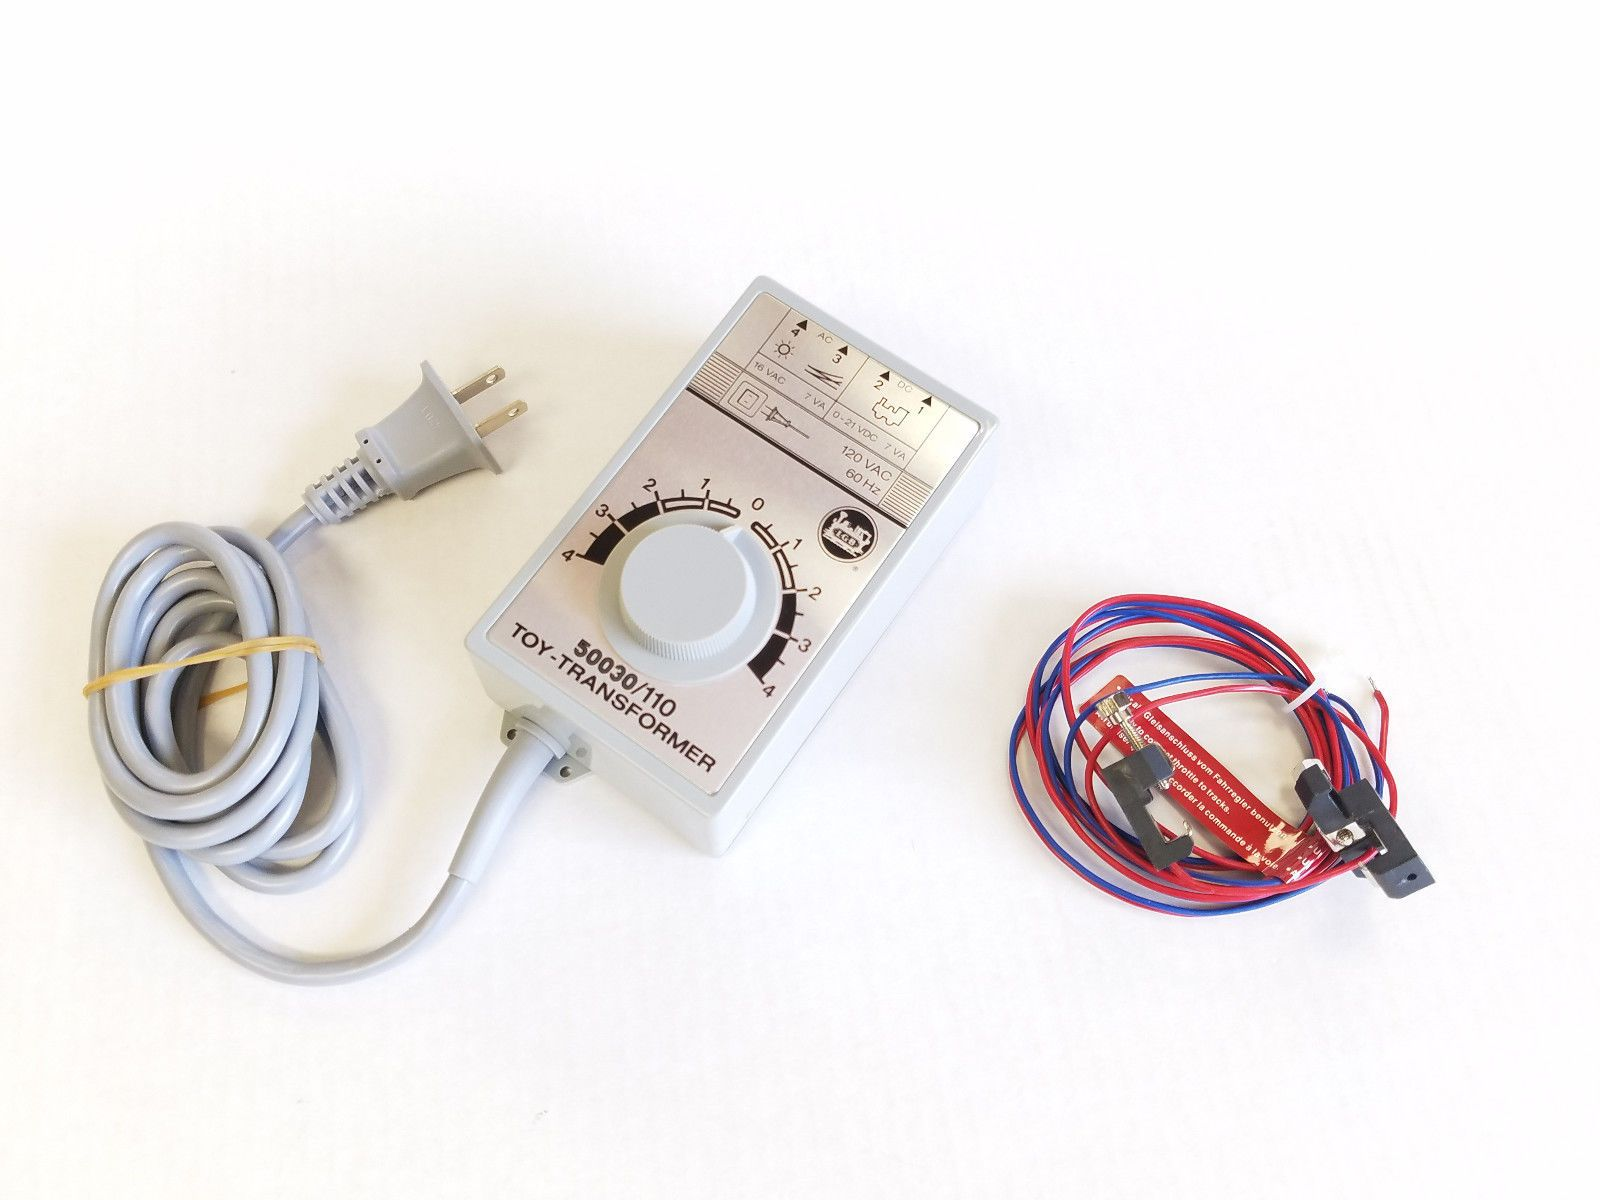 small resolution of other g scale 4149 lgb power pack 1 amp 120volt new item w out original box buy it now only 74 99 on ebay other scale power original